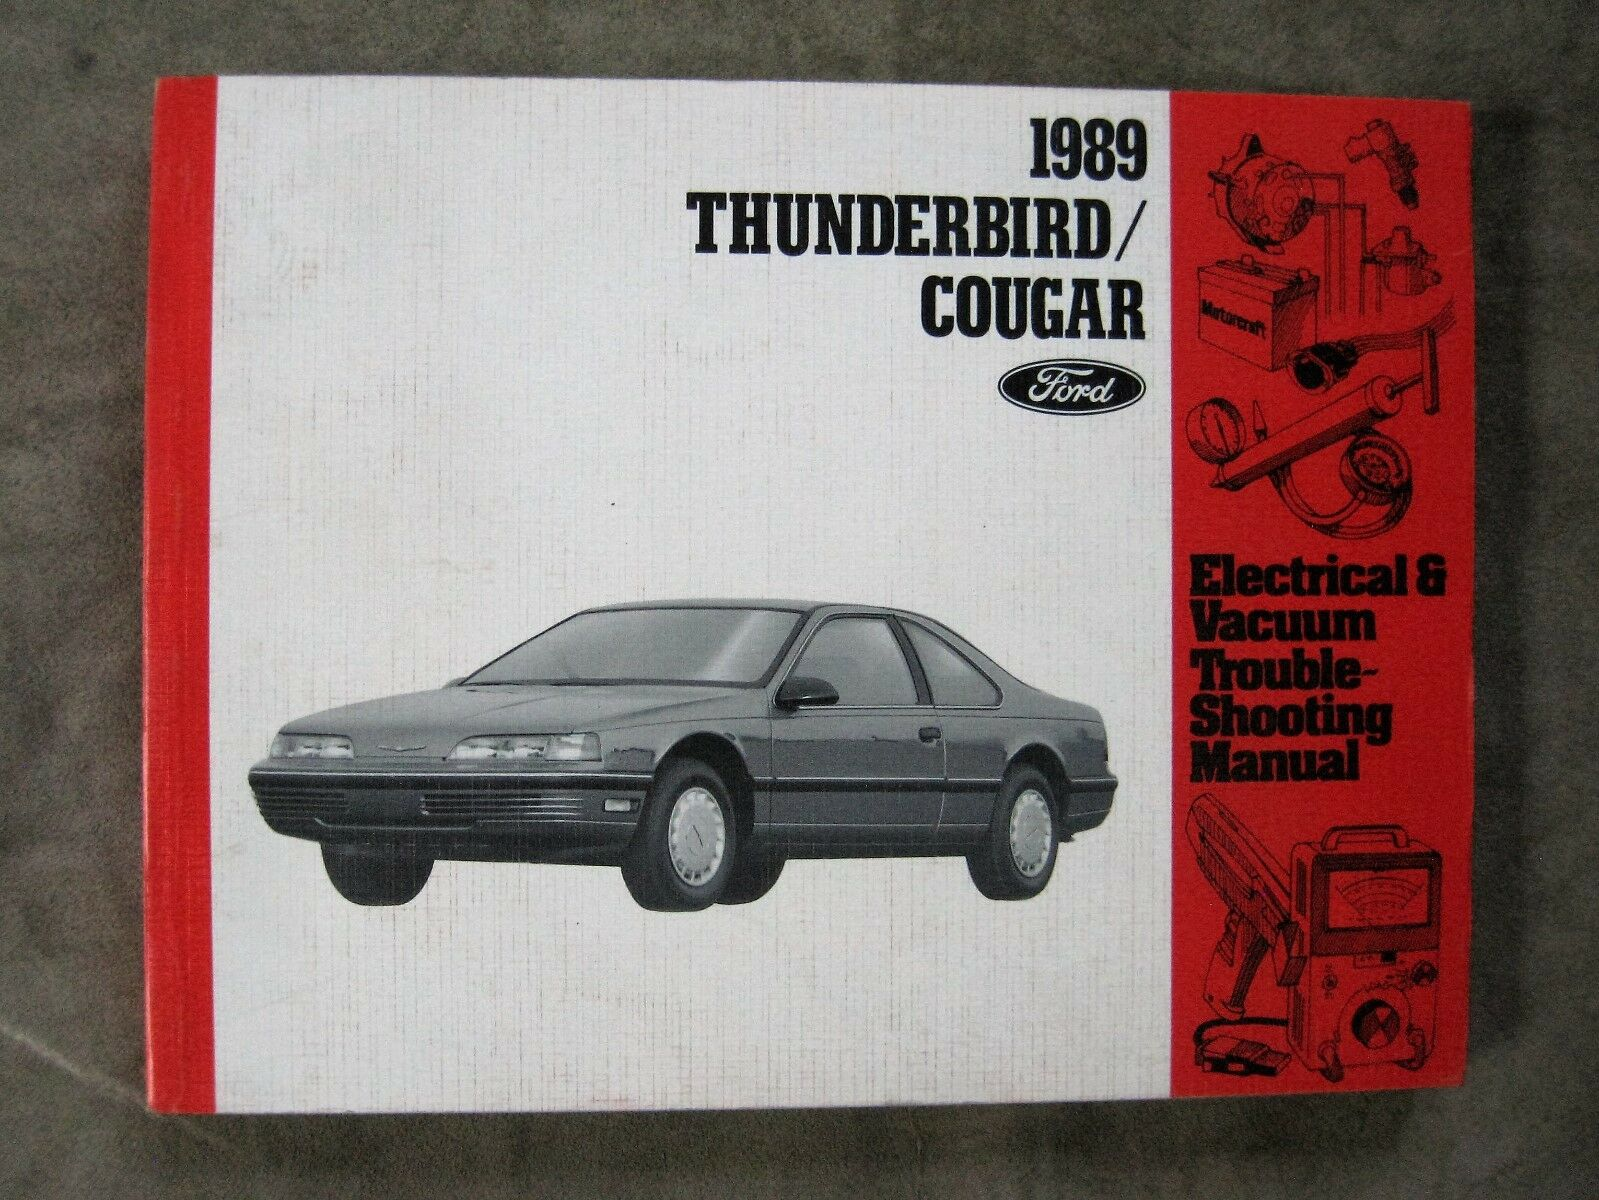 1989 Ford Thunderbird Cougar Wiring Diagram Electrical Vacuum Manual 1 of  1Only 1 available ...